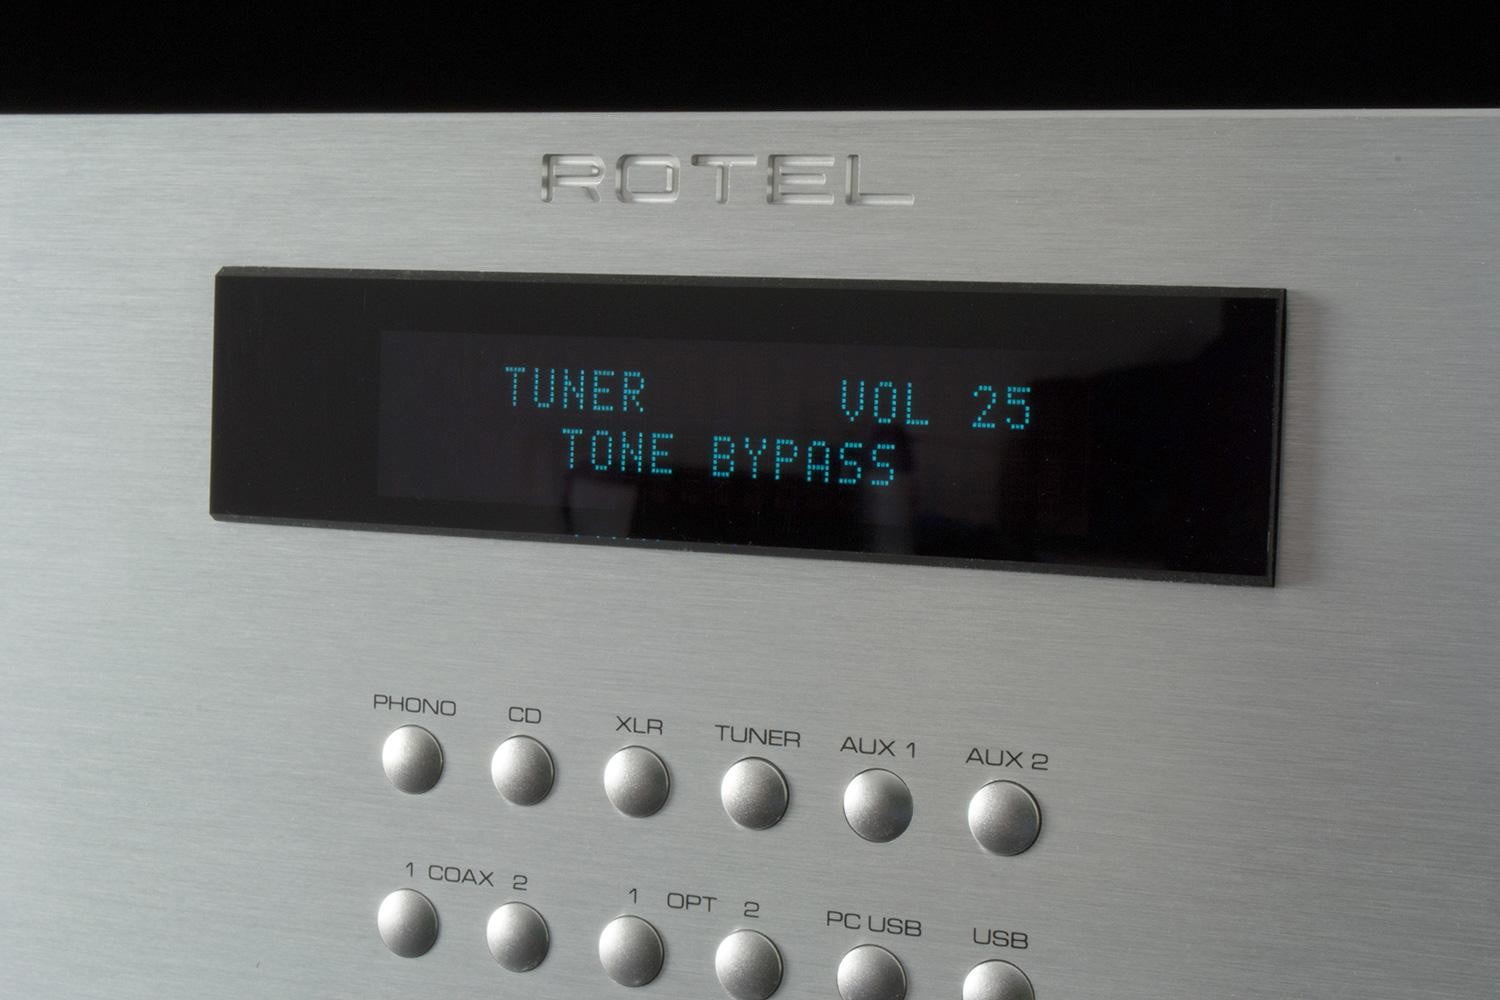 rotel ra 1570 review receiver datapanel